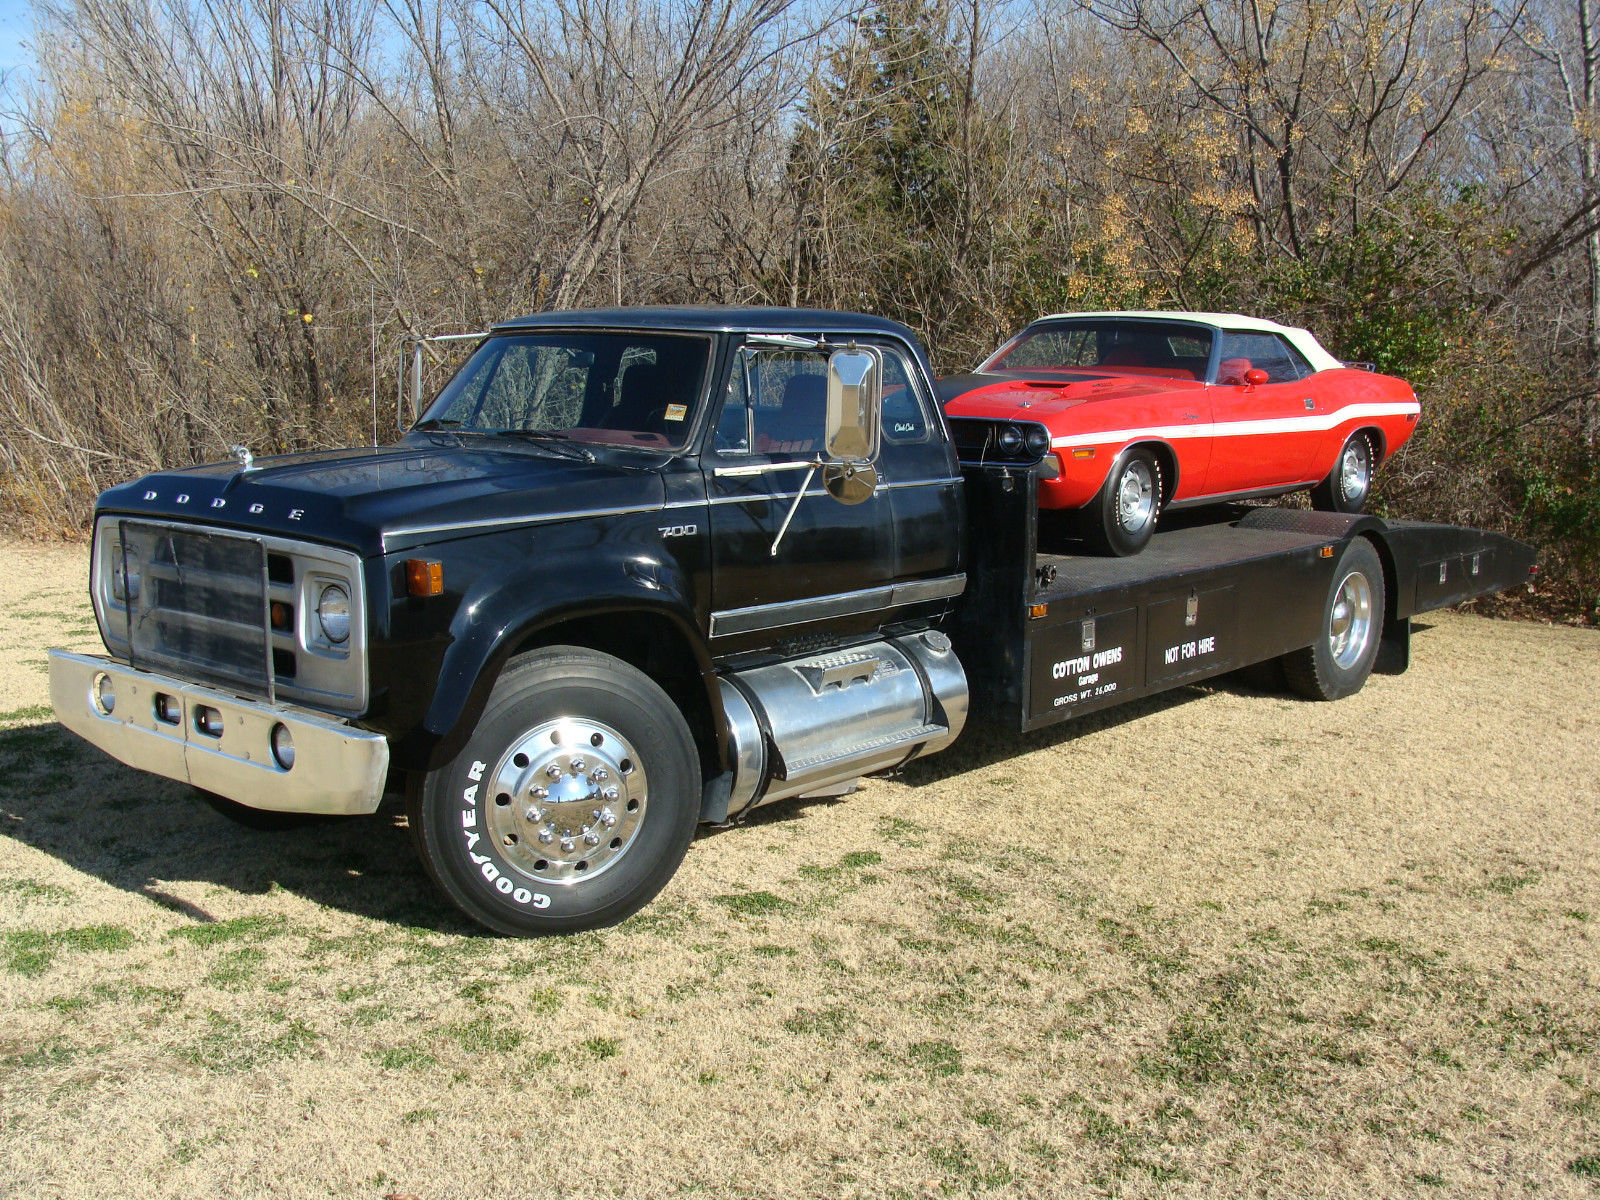 Old Ramp Trucks For Sale >> BangShift.com This 1977 Dodge D700 Ramp Truck Is A Knockout! Big Block Power, Built By Cotton ...